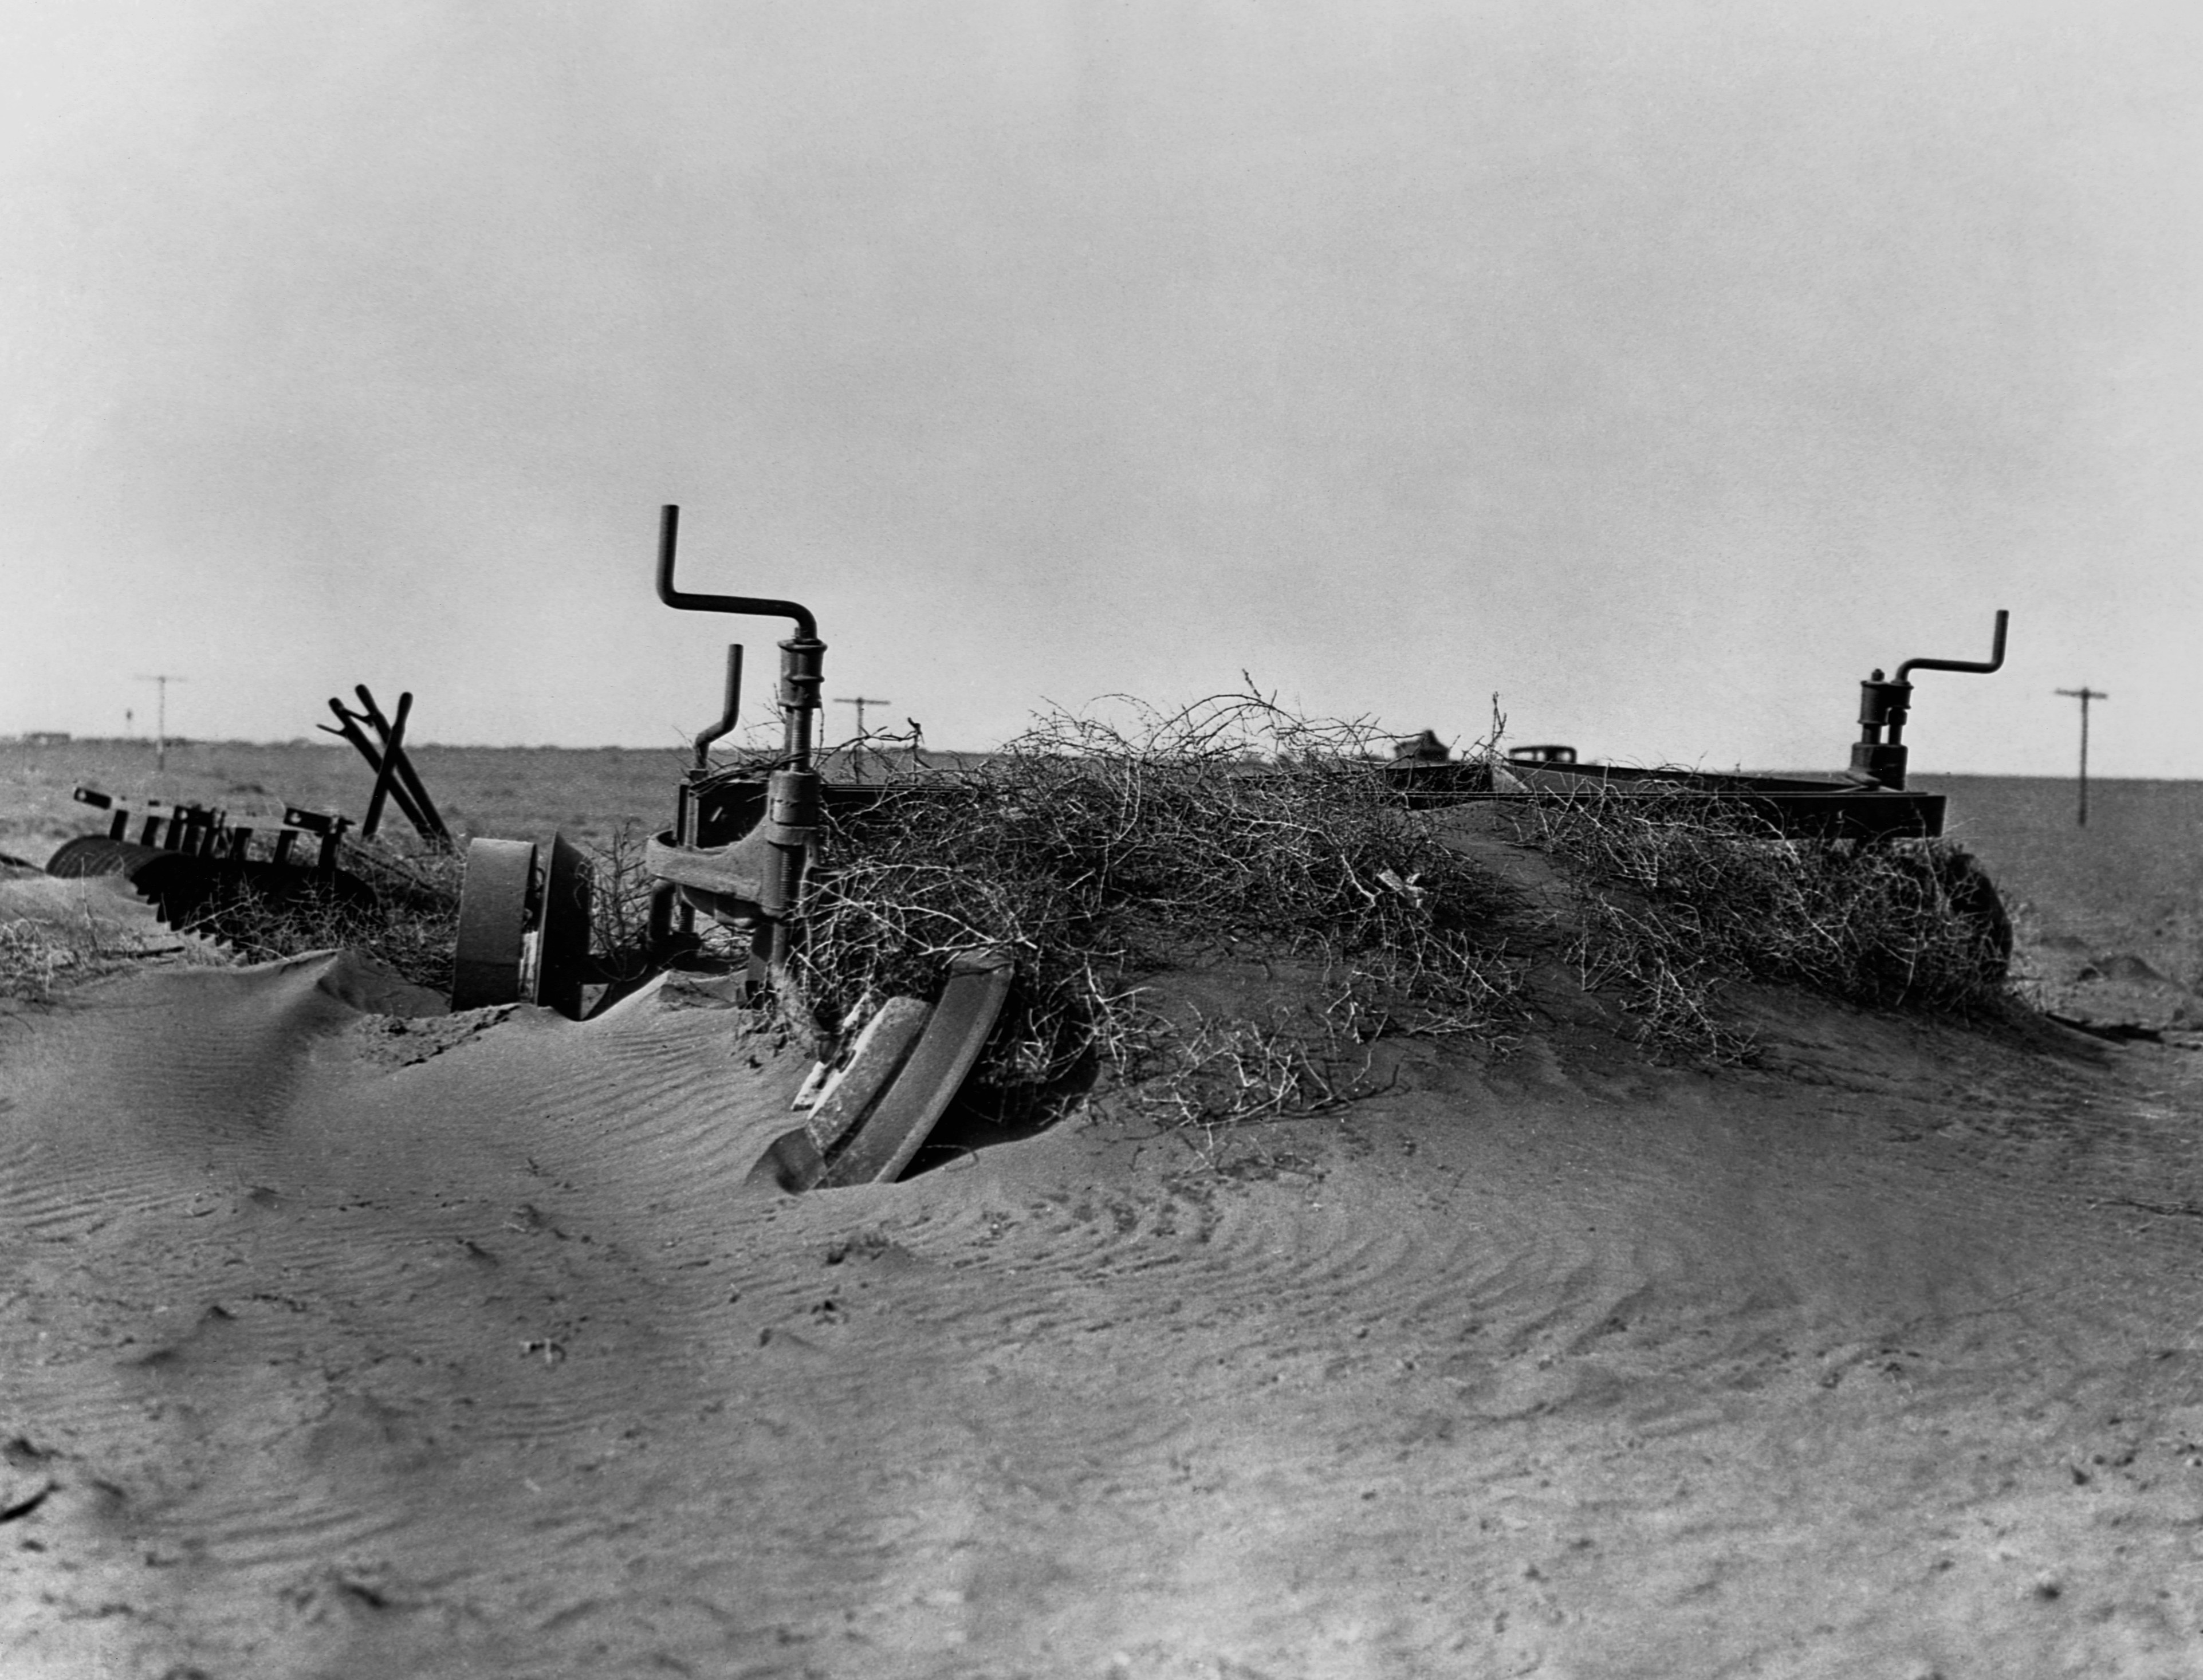 a history of the dust bowl in the united states What was the dust bowl the dust bowl, which is also referred to as the dirty thirties, was an era where a terrible wind blew dirty and loose sand wreaed havoc on society, agriculture, and the economy of midwestern united states at the time, the midwest had alr.